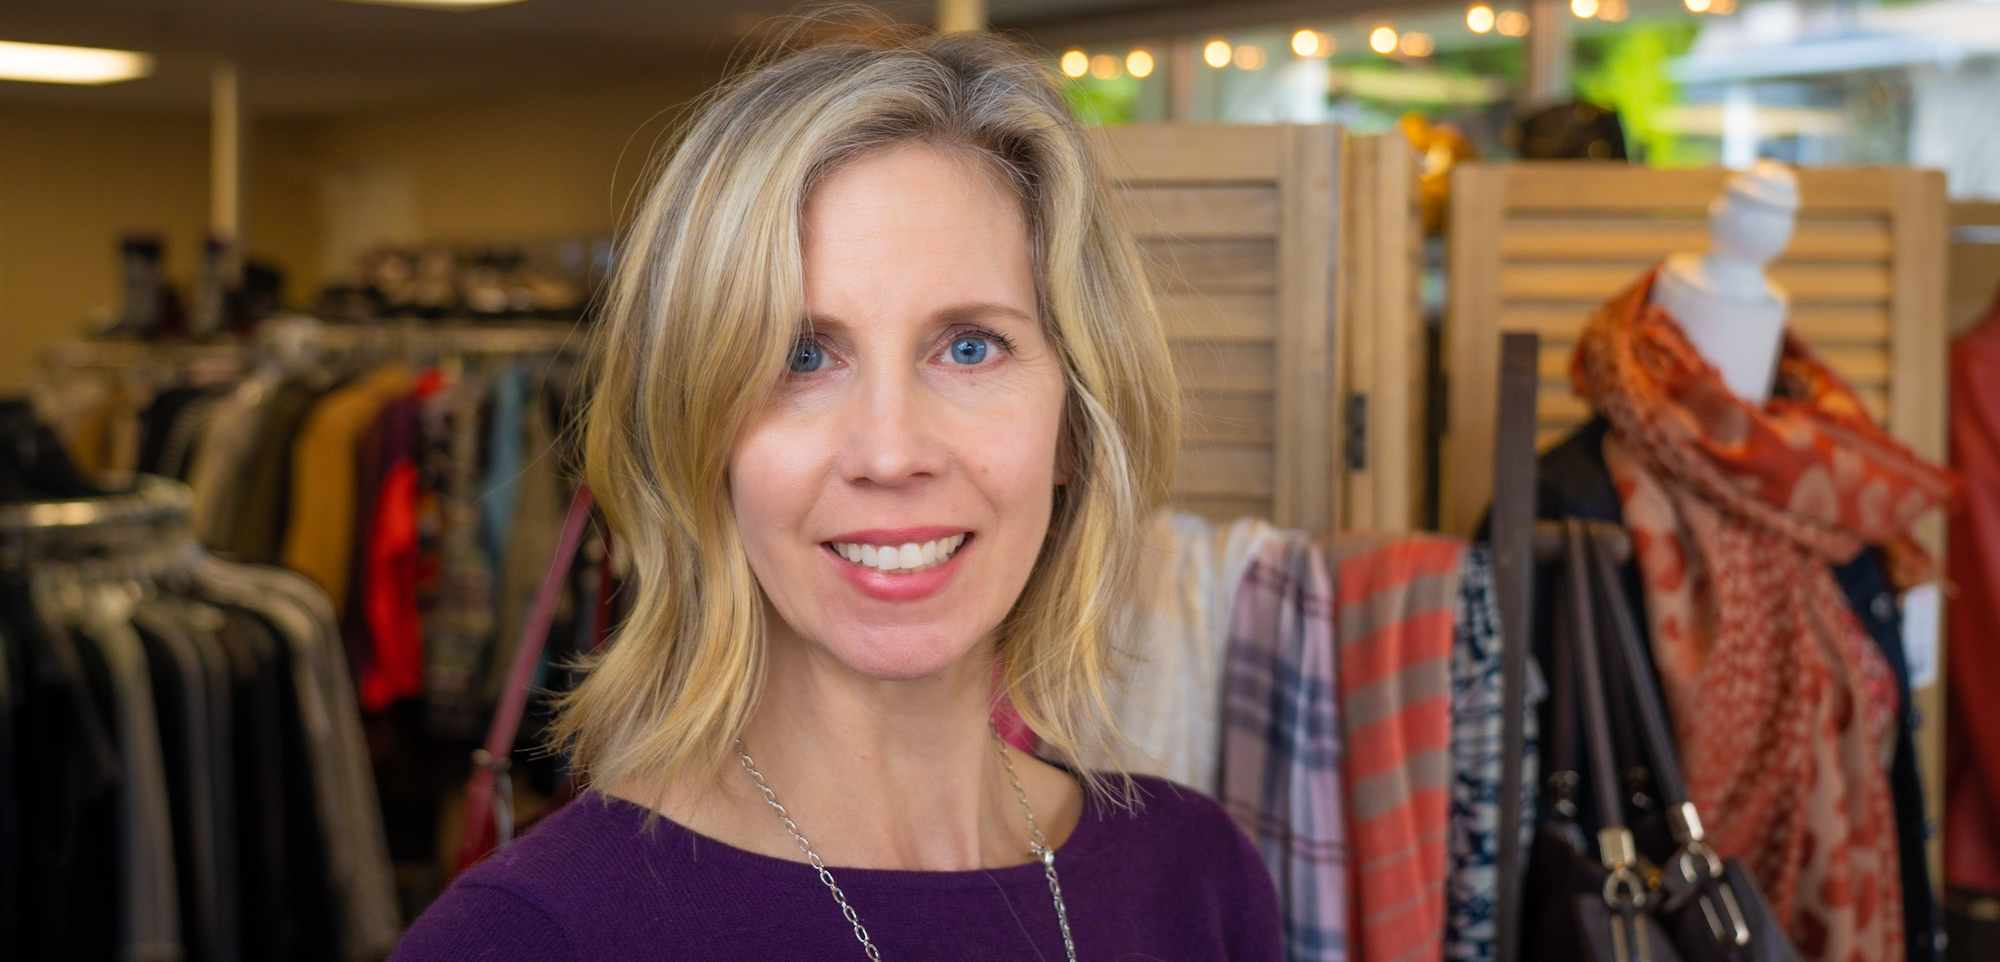 Pear Tree Consignment in Downtown Edmonds